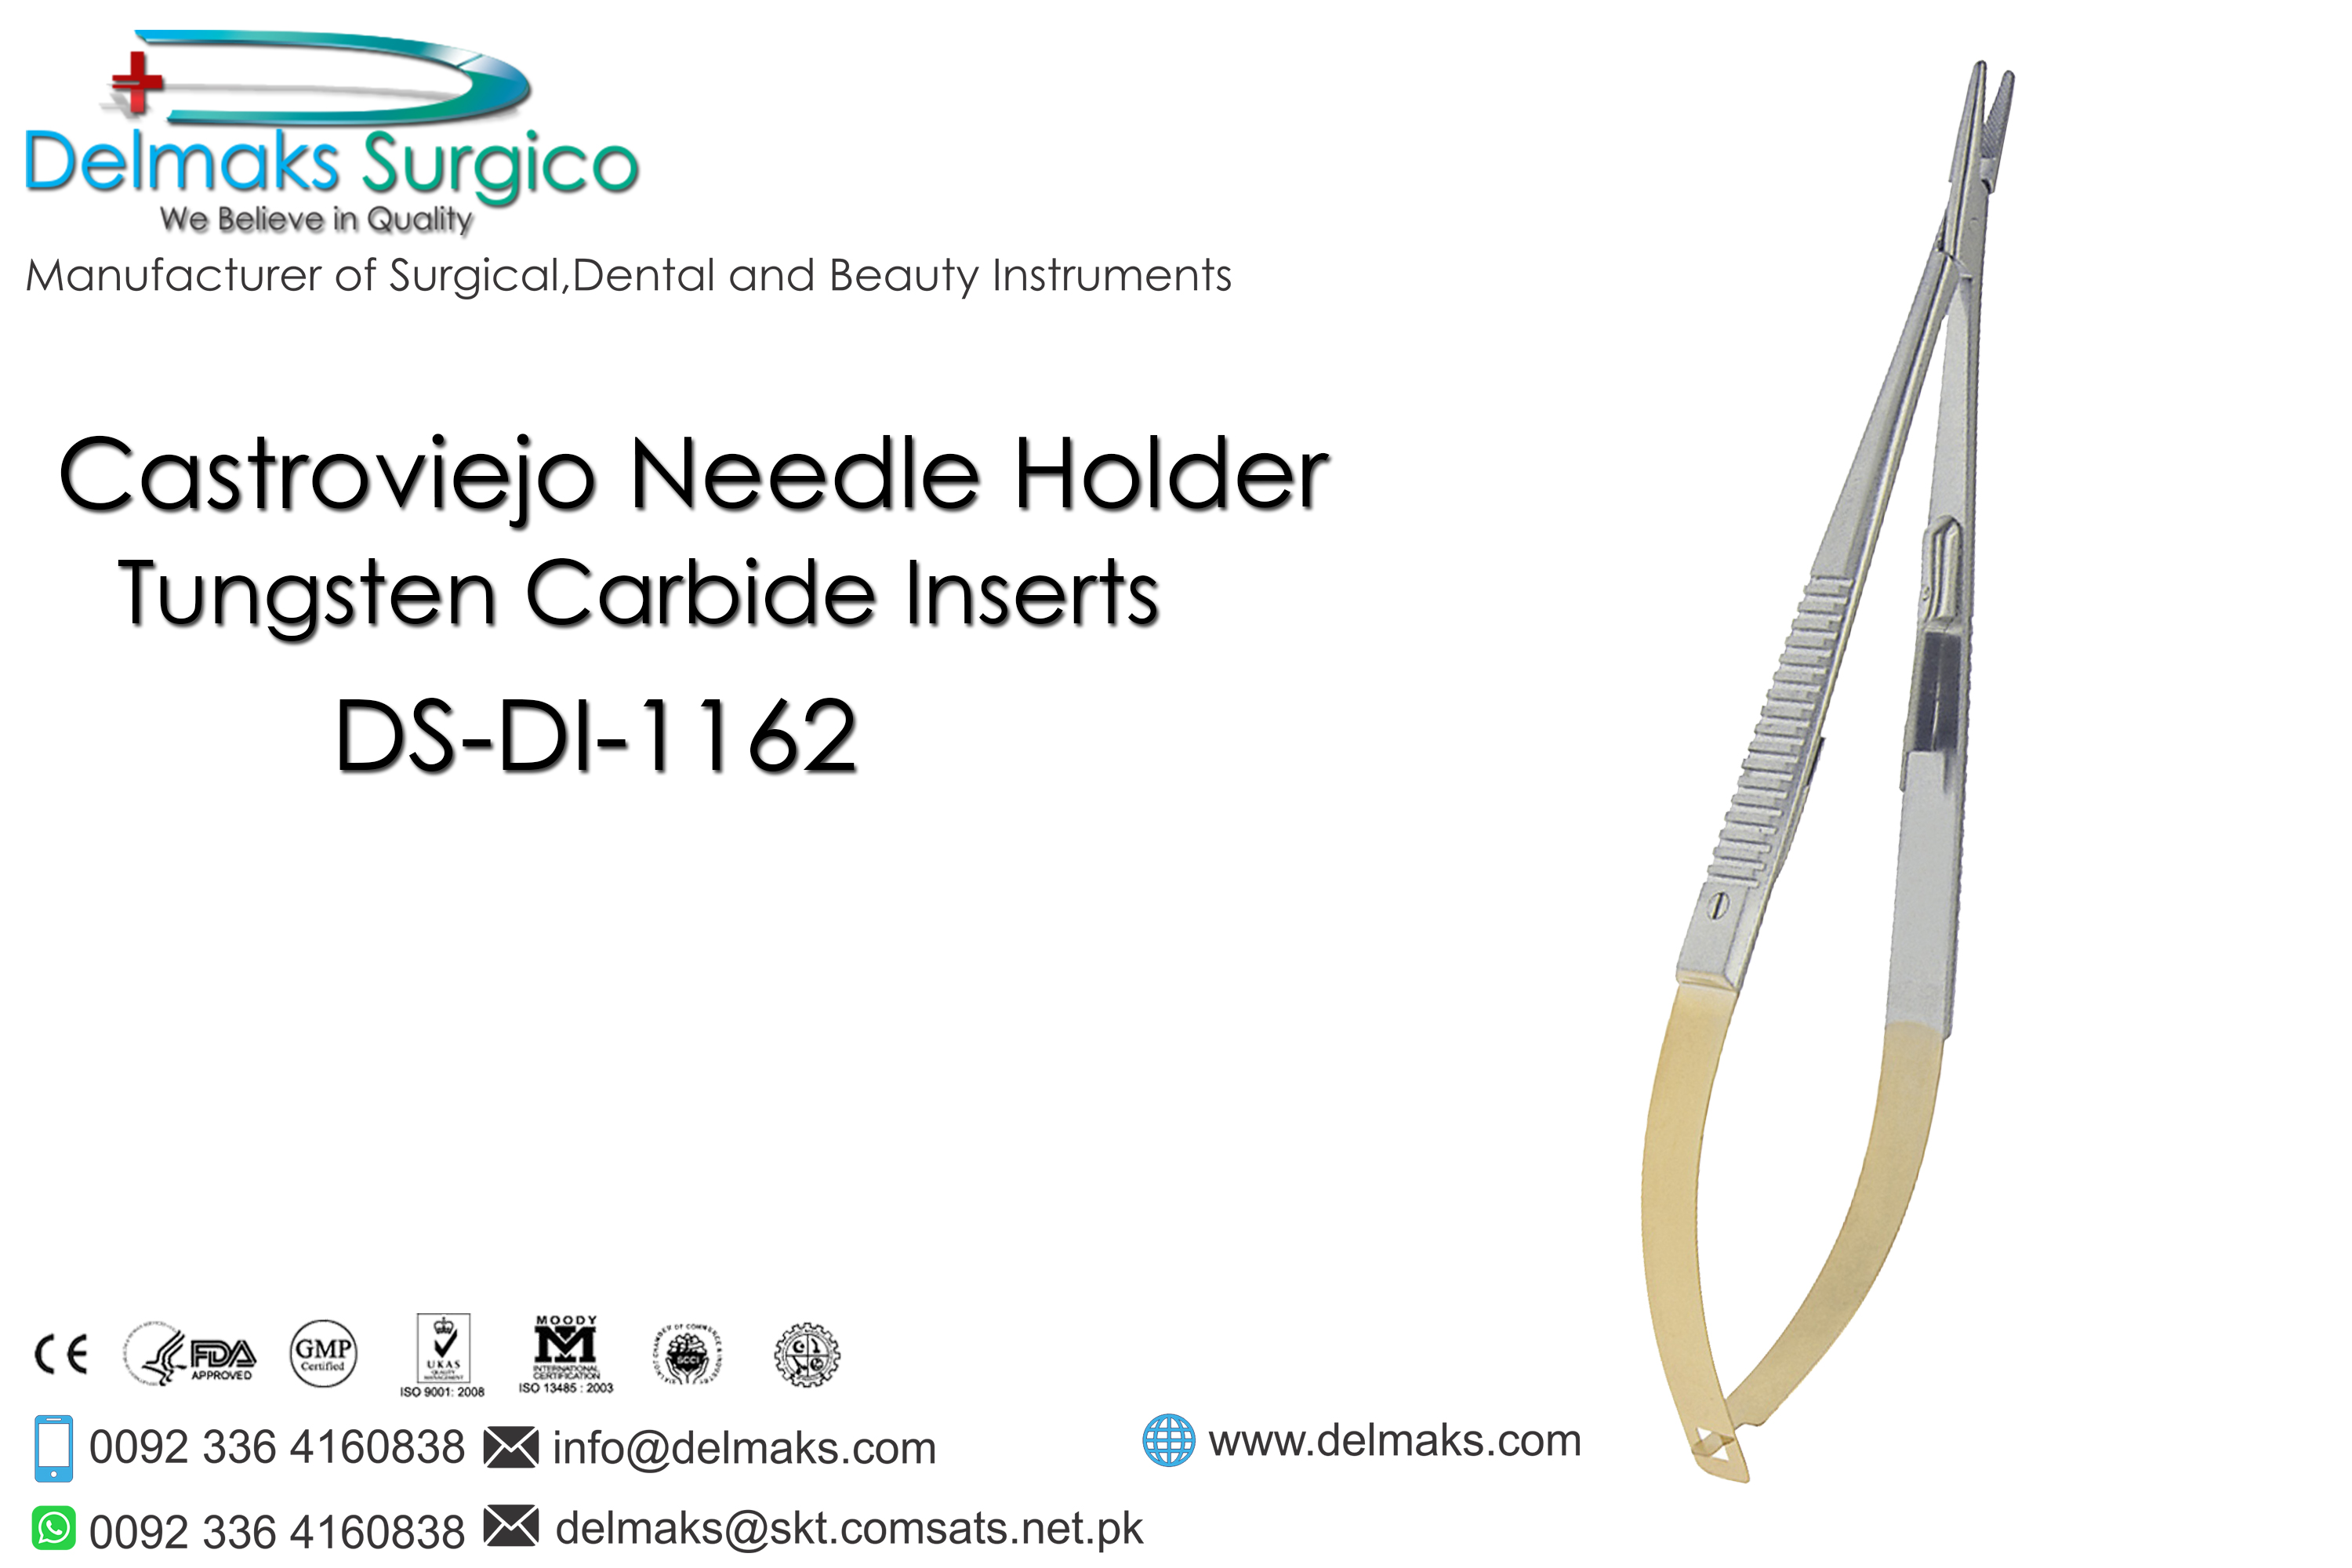 Castroviejo Needle Holder-Needle Holders-Dental Instruments-Delmaks Surgico